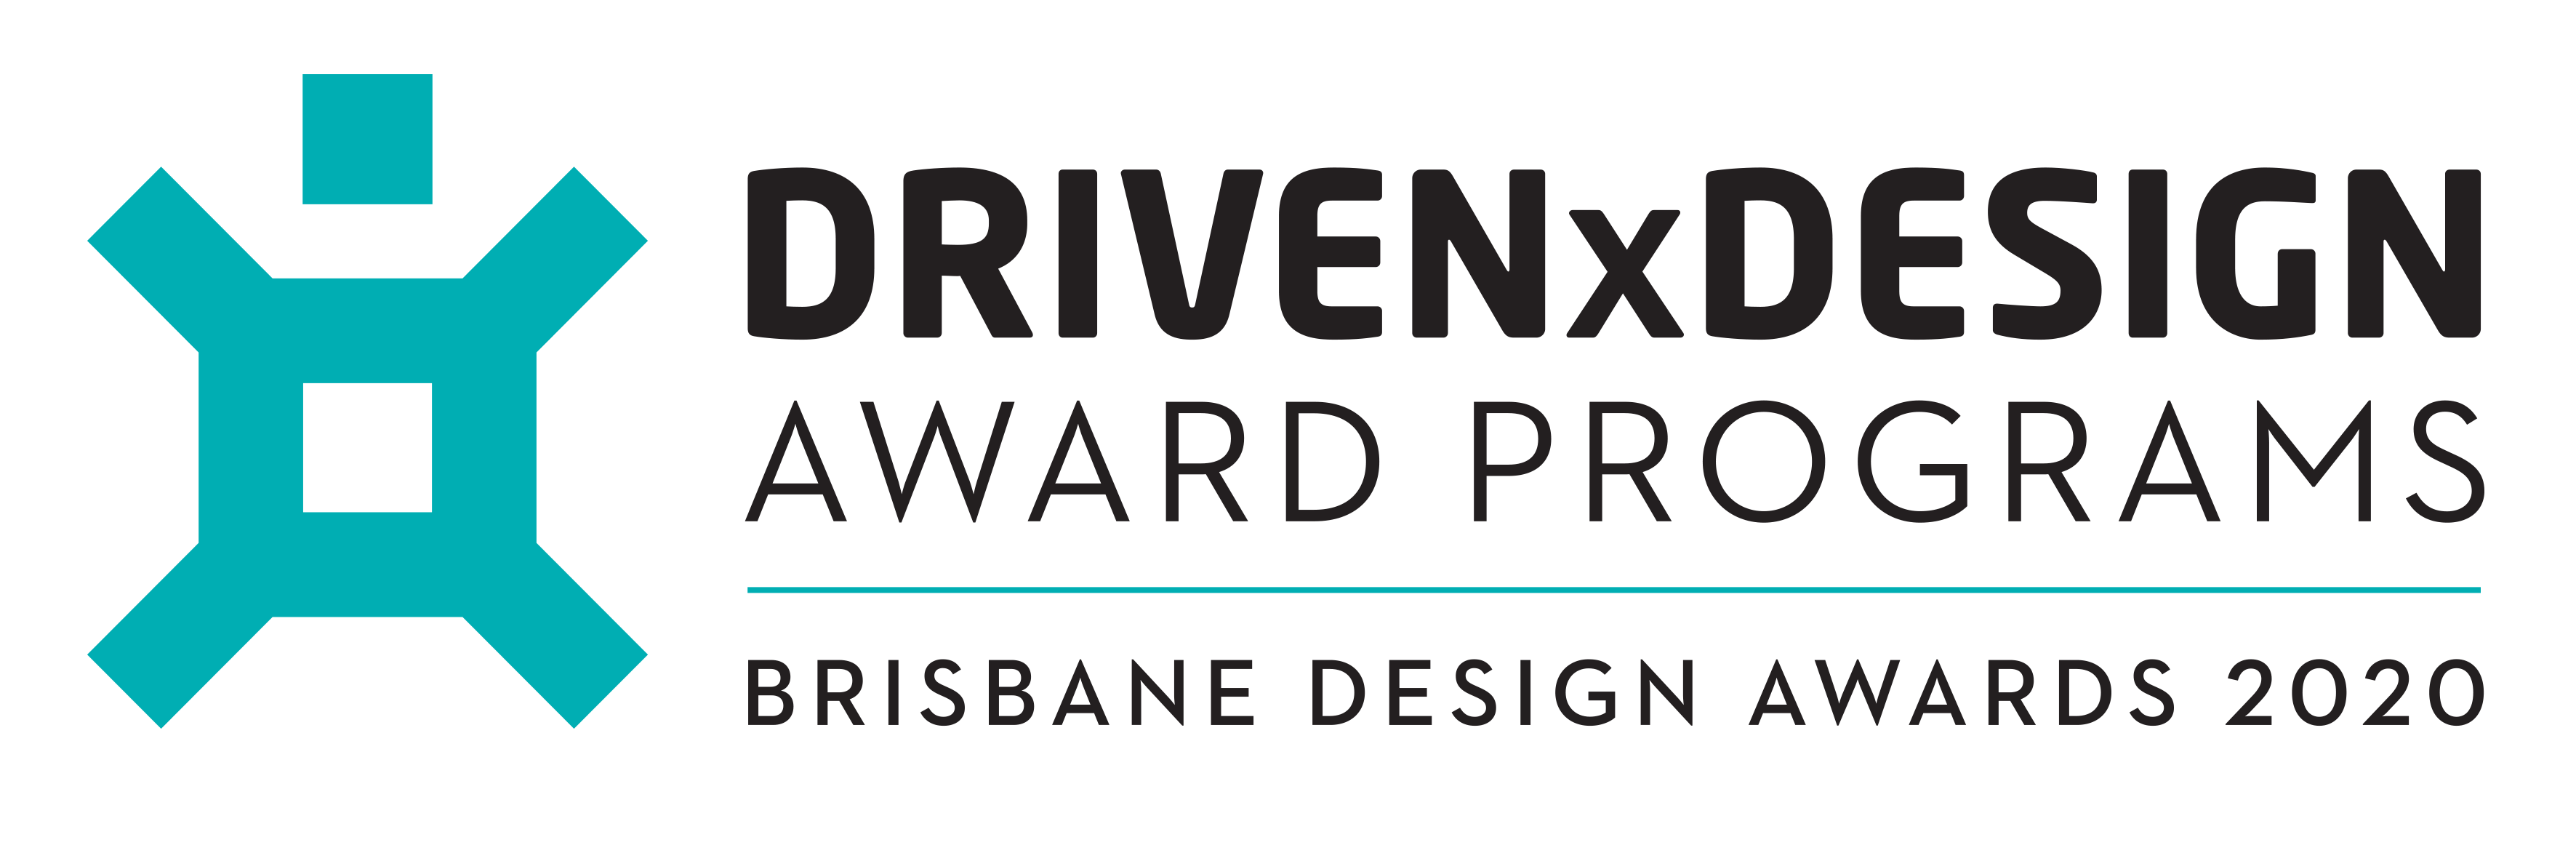 Brisbane Design Awards